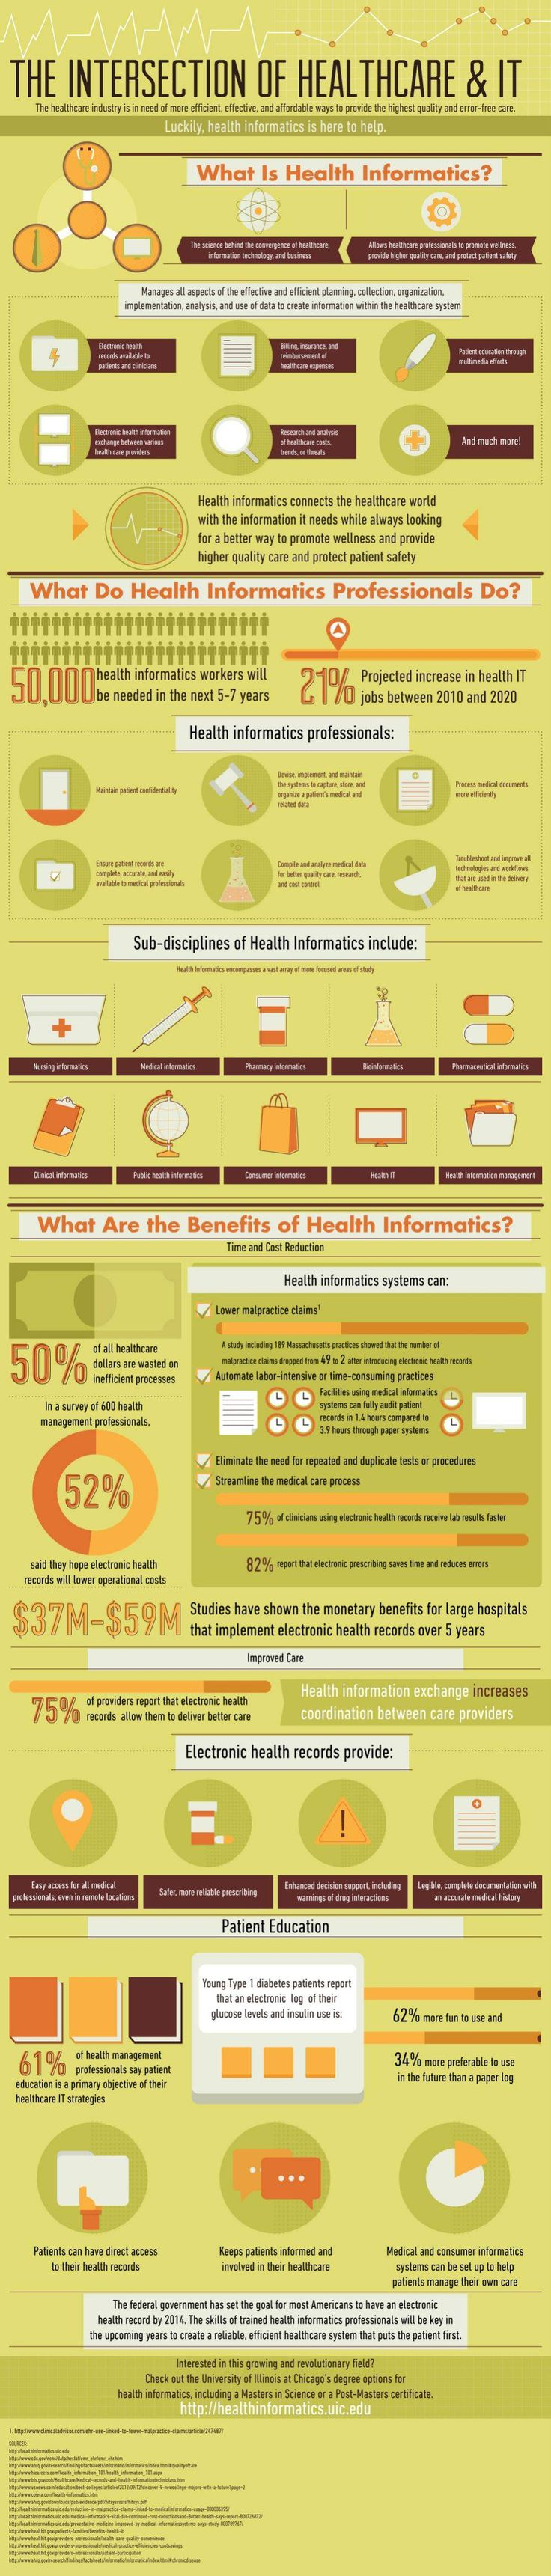 Infographic: Informatics at the intersection of healthcare and IT | Government Health IT